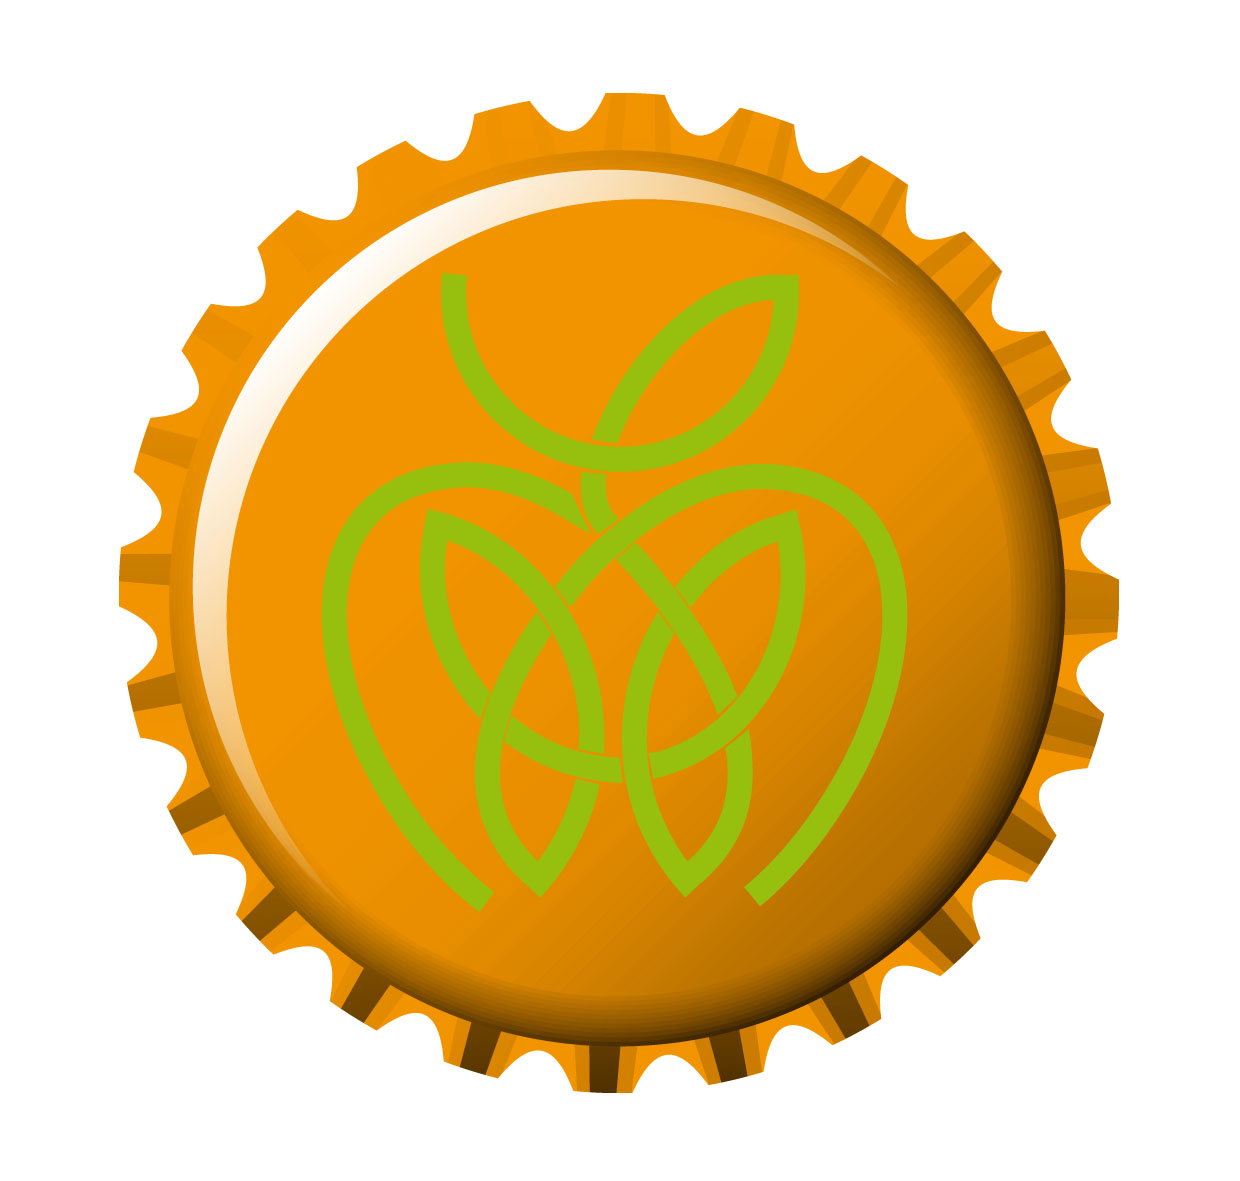 Free Beer Cap Cliparts, Download Free Clip Art, Free Clip Art on.